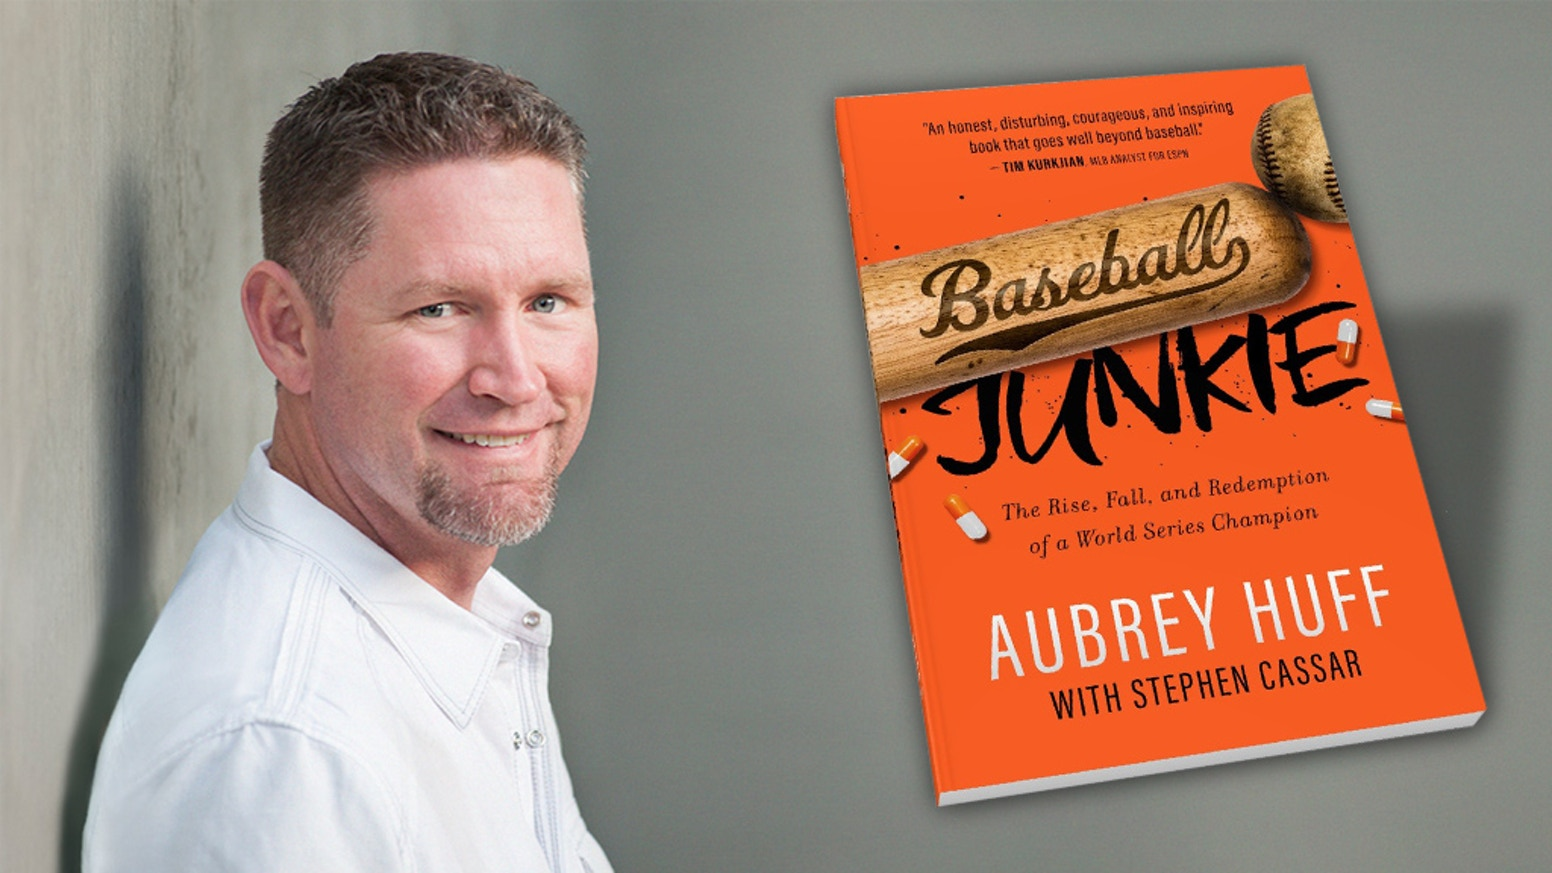 Honest, raw memoir documenting the struggles 2-time World Series Champion Aubrey Huff endured on and off the field.